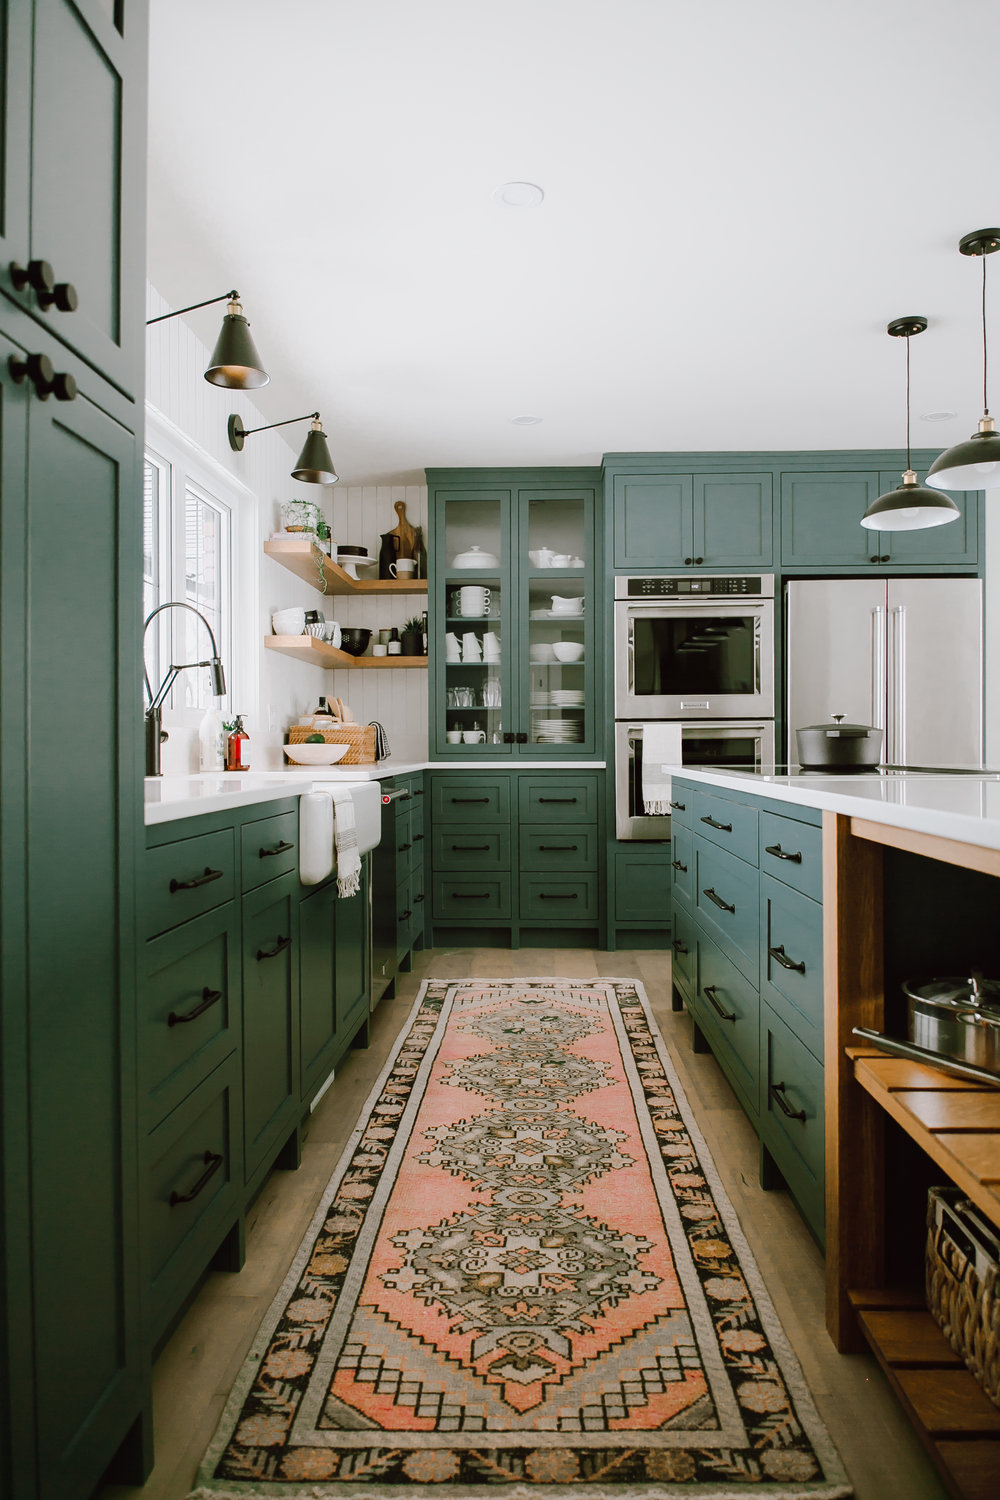 A gorgeous kitchen with dark green cabinets, black hardware, a vintage runner, and open shelving. // Pros and cons of open shelving.